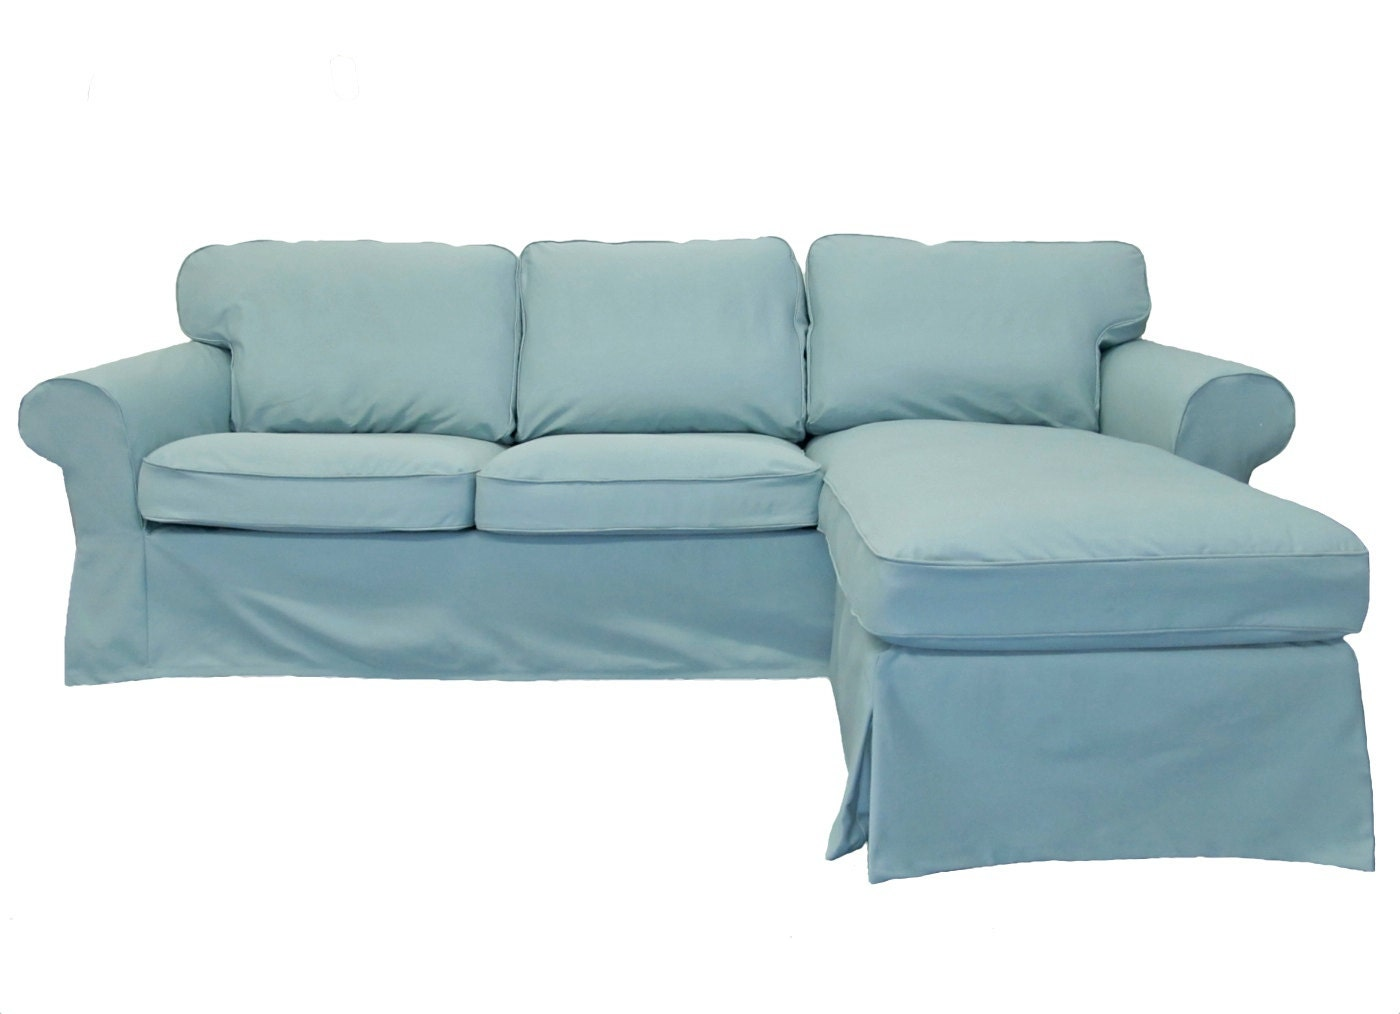 Sofa sectional with chaise minimalist home design for Chaise urban ikea